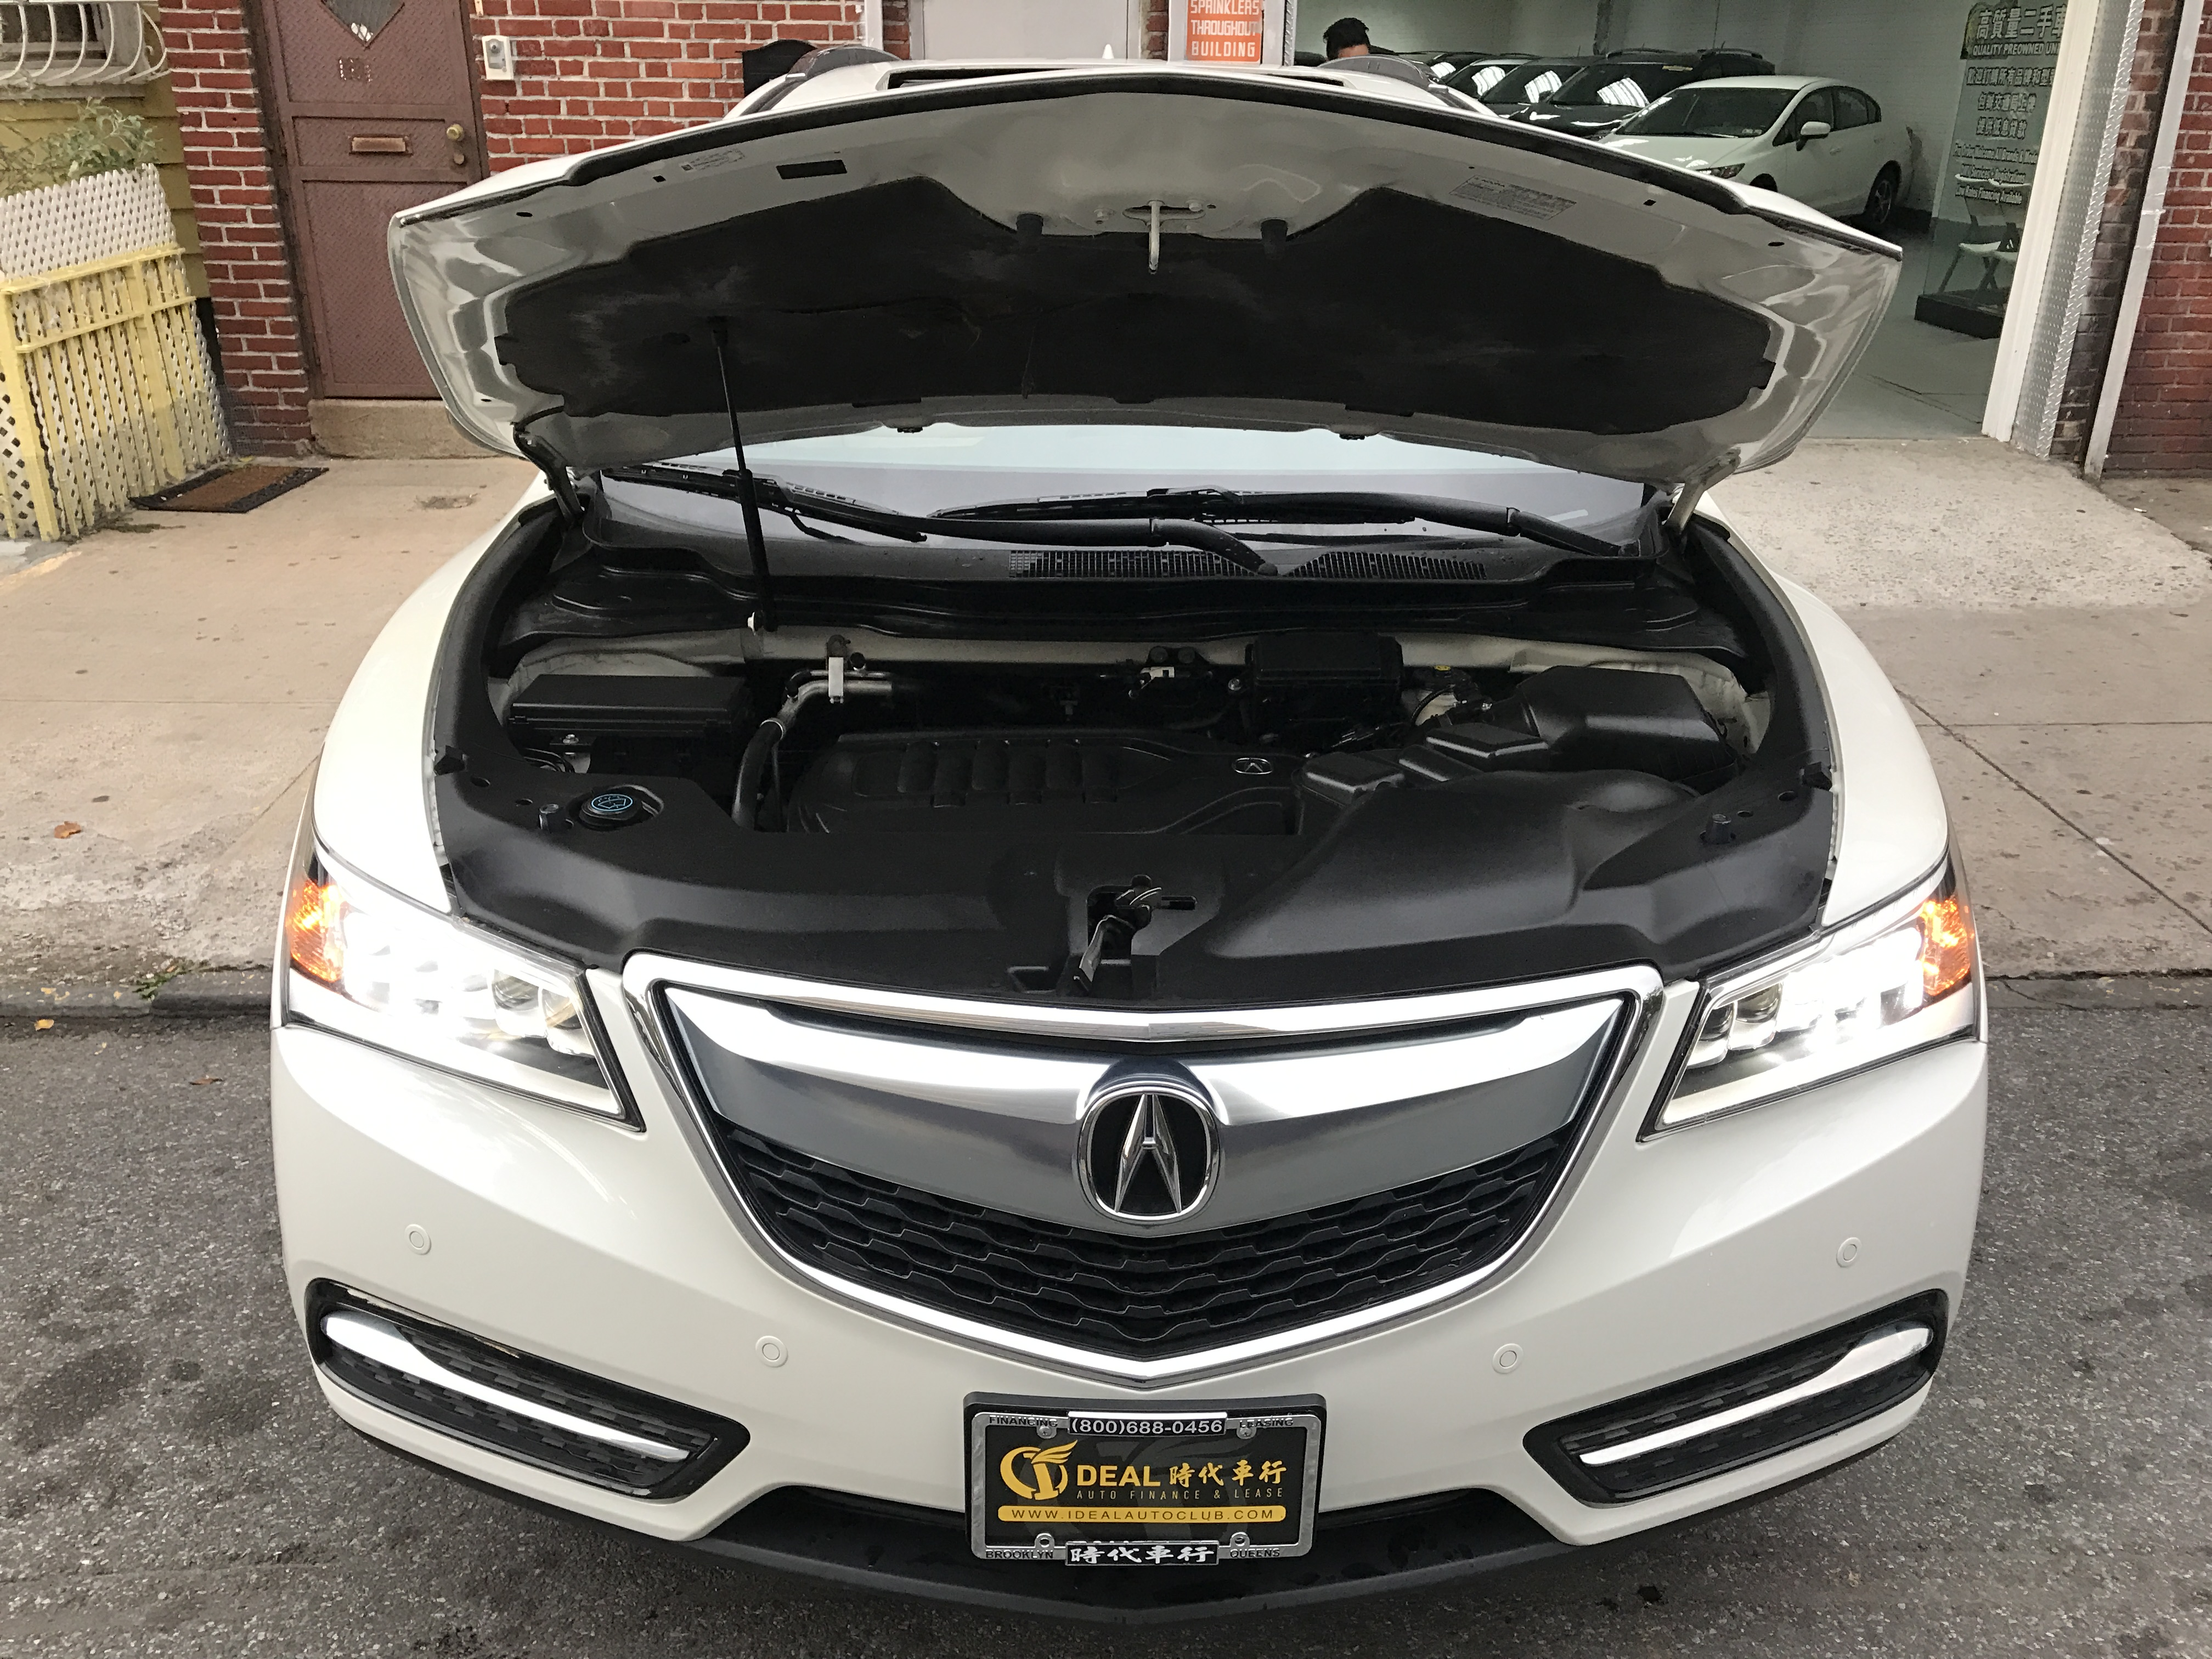 dealers deal lease sale new mdx for of pict fresh ohio deals cars acura mo best connecticut